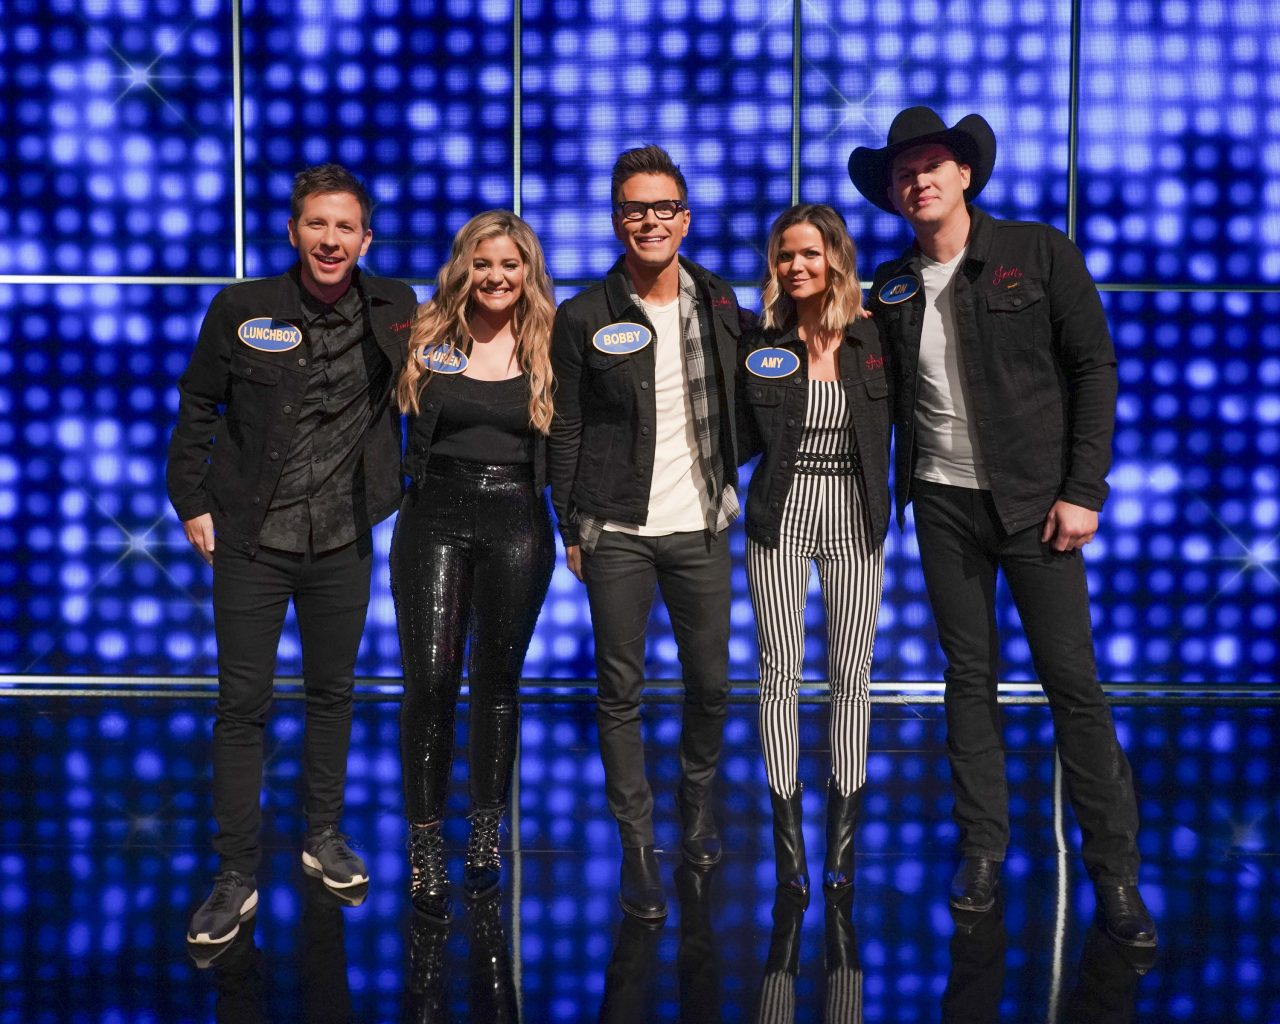 Bobby Bones' 'Celebrity Family Feud' Episode to Air in Late July